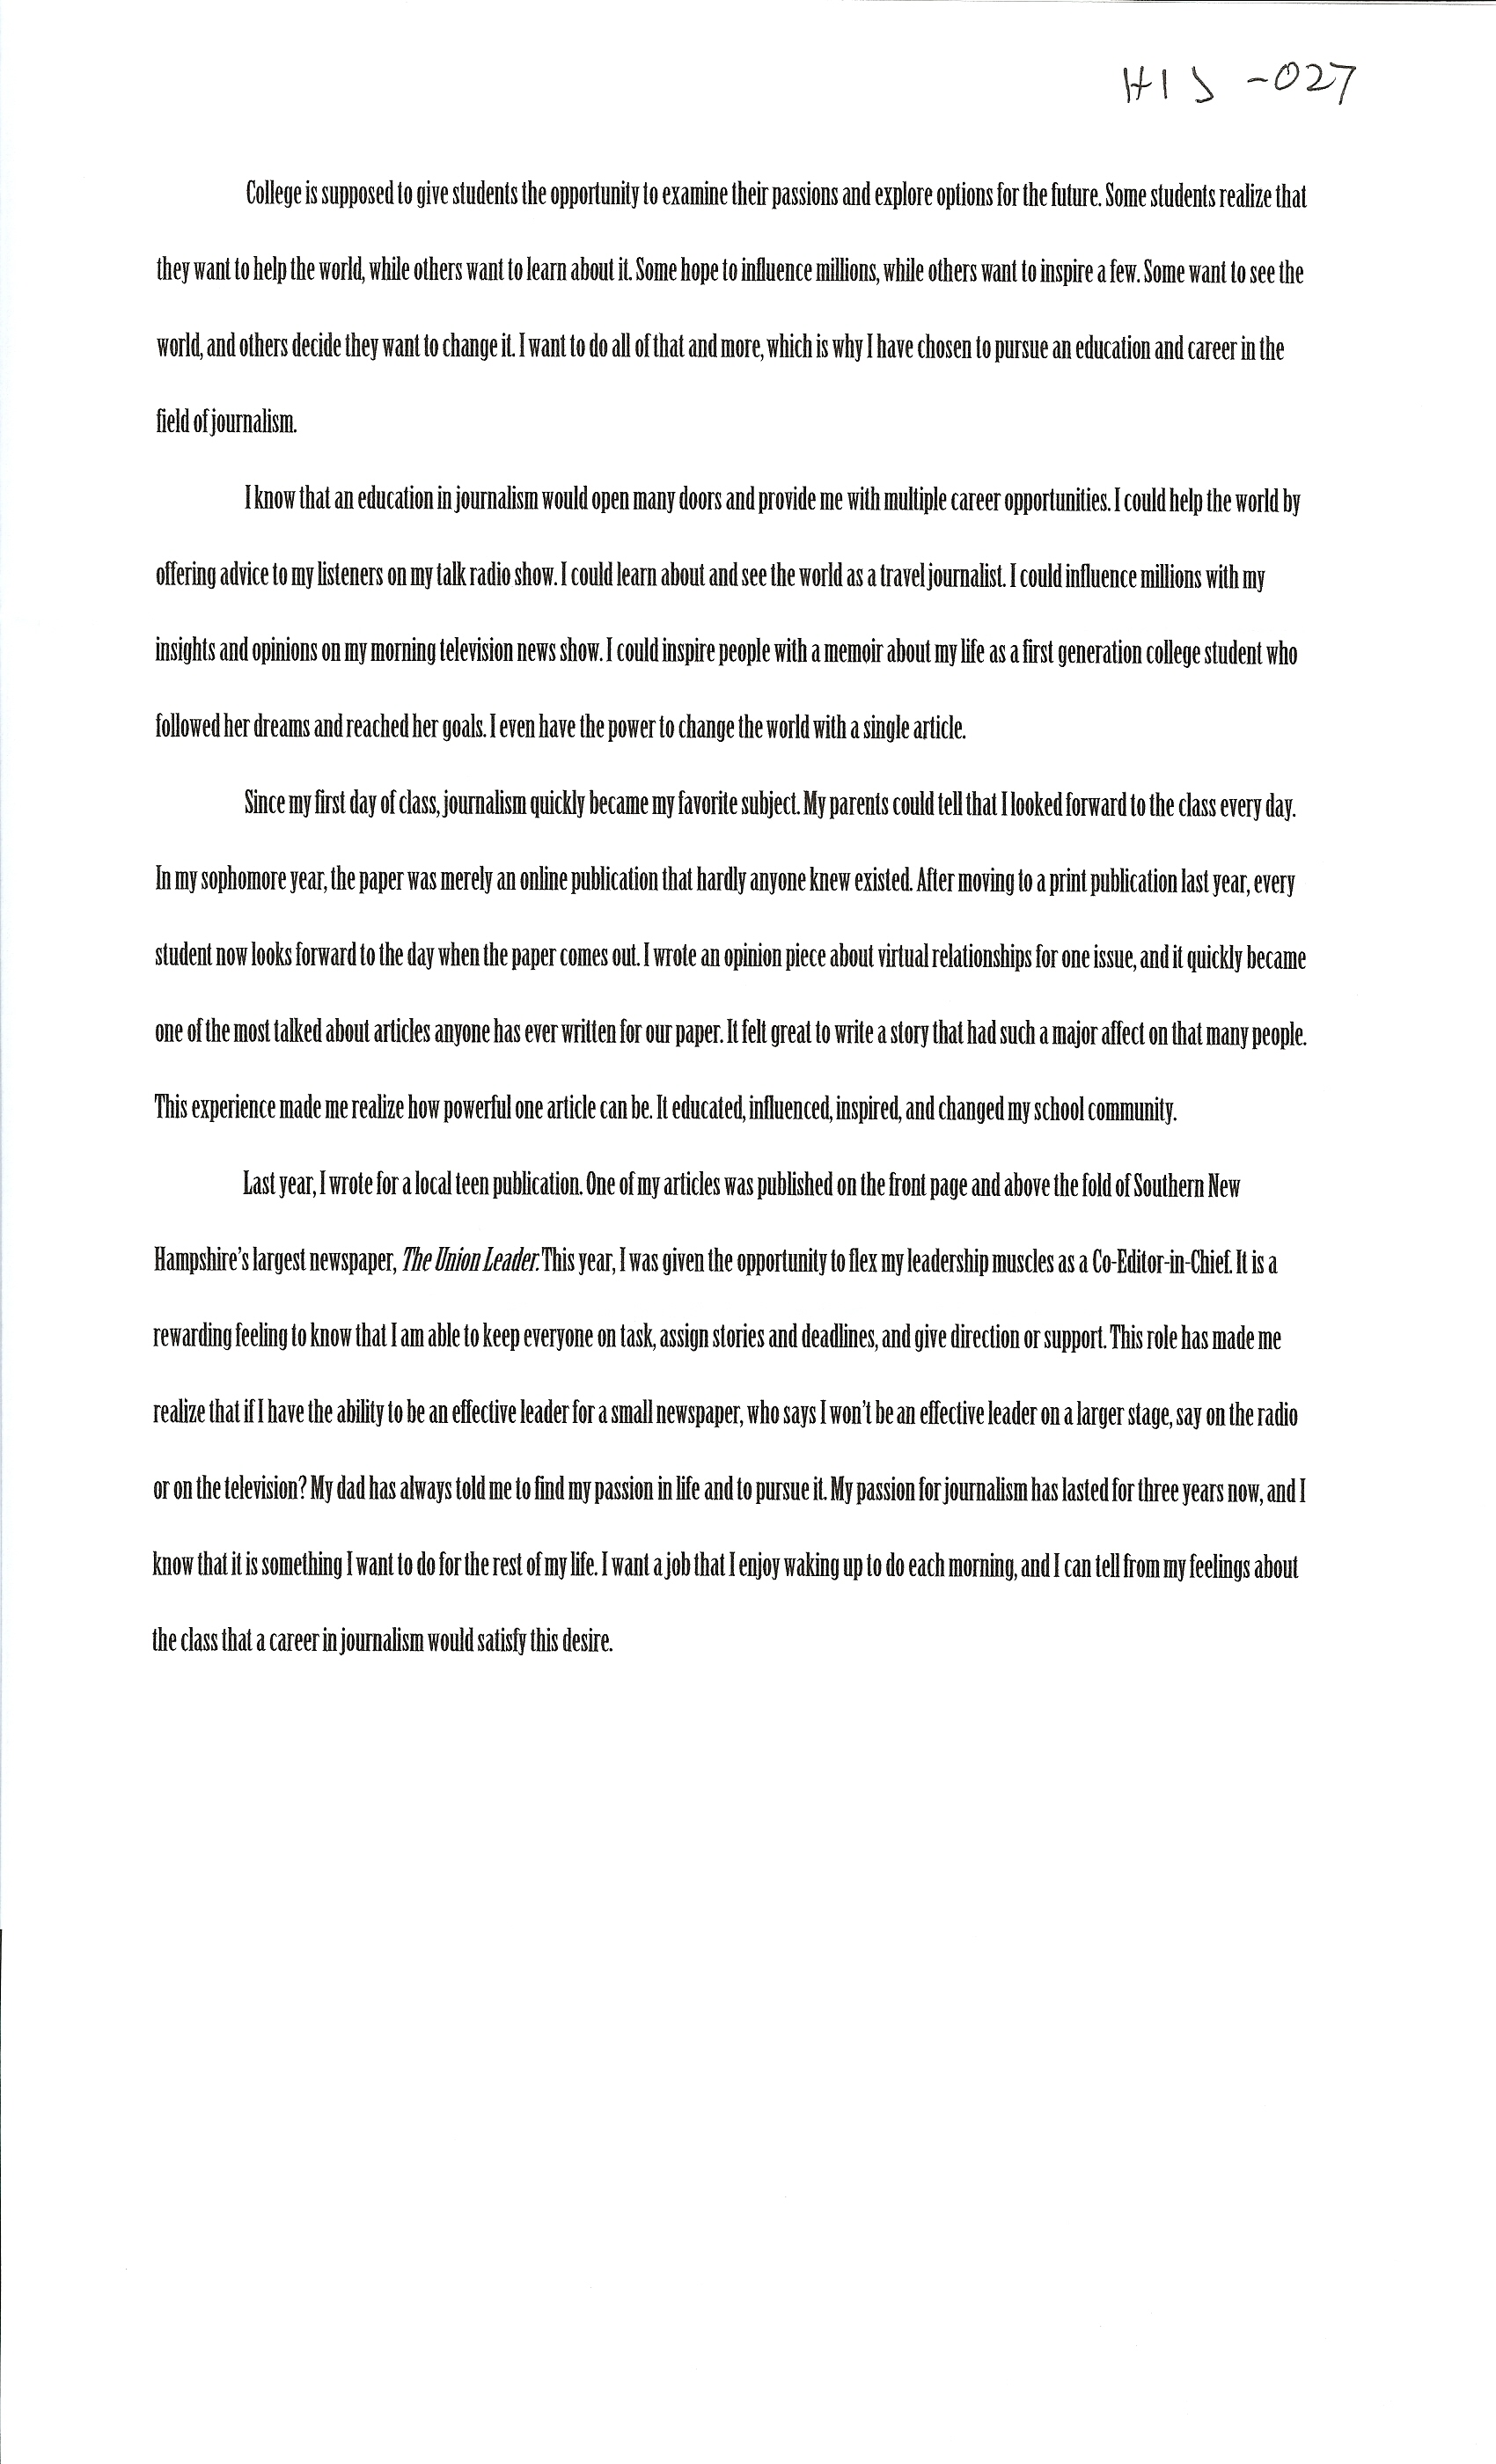 006 Essay Example Alexa Serrecchia Exceptional Fitness Personal Topics Health And Conclusion Full